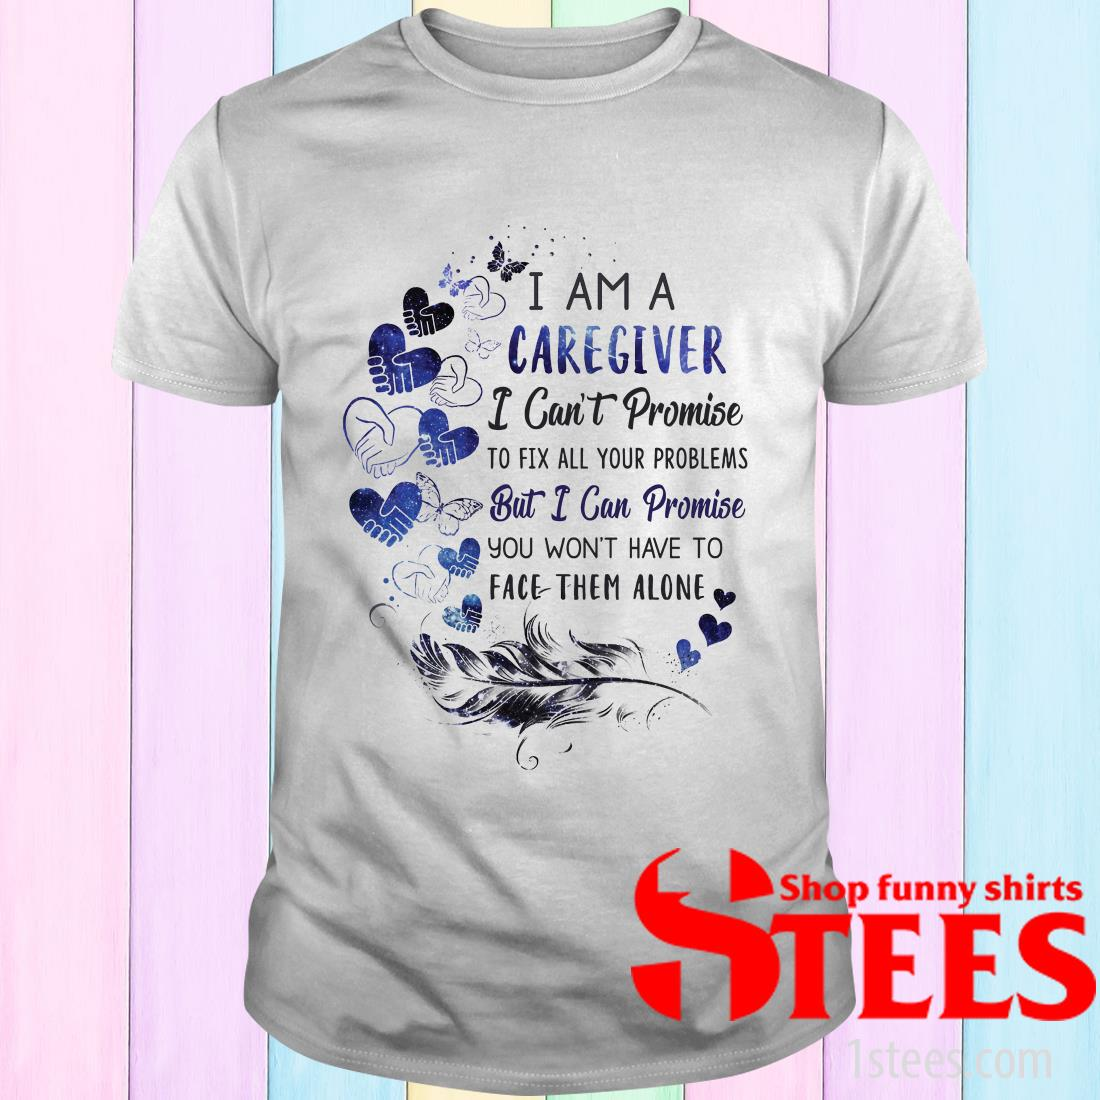 I Am A Caregiver I Can't Promise To Fix All You Problems Shirt